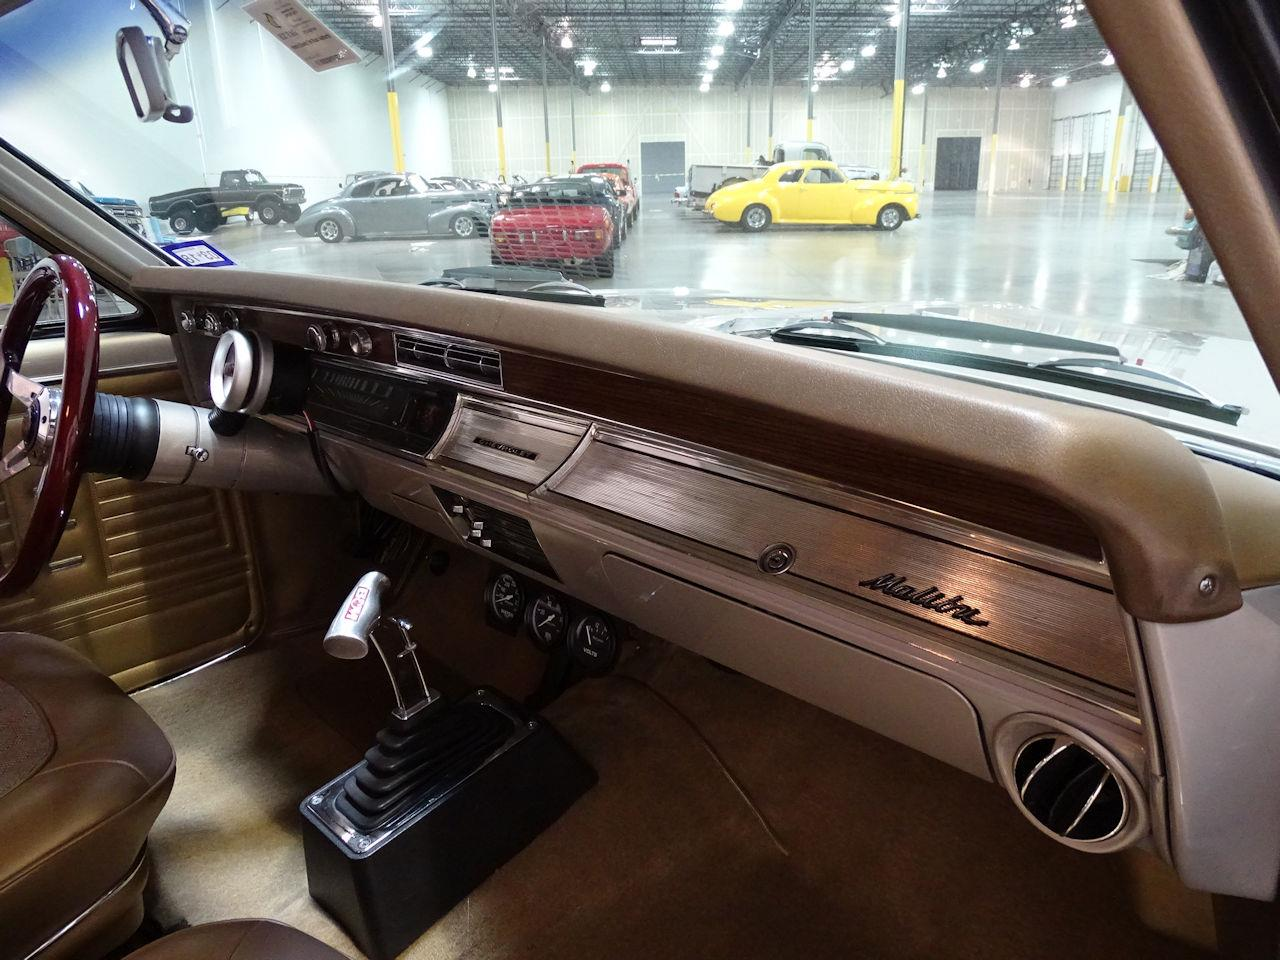 Classic Cars For Sale Houston Area: 1967 Chevrolet Chevelle For Sale